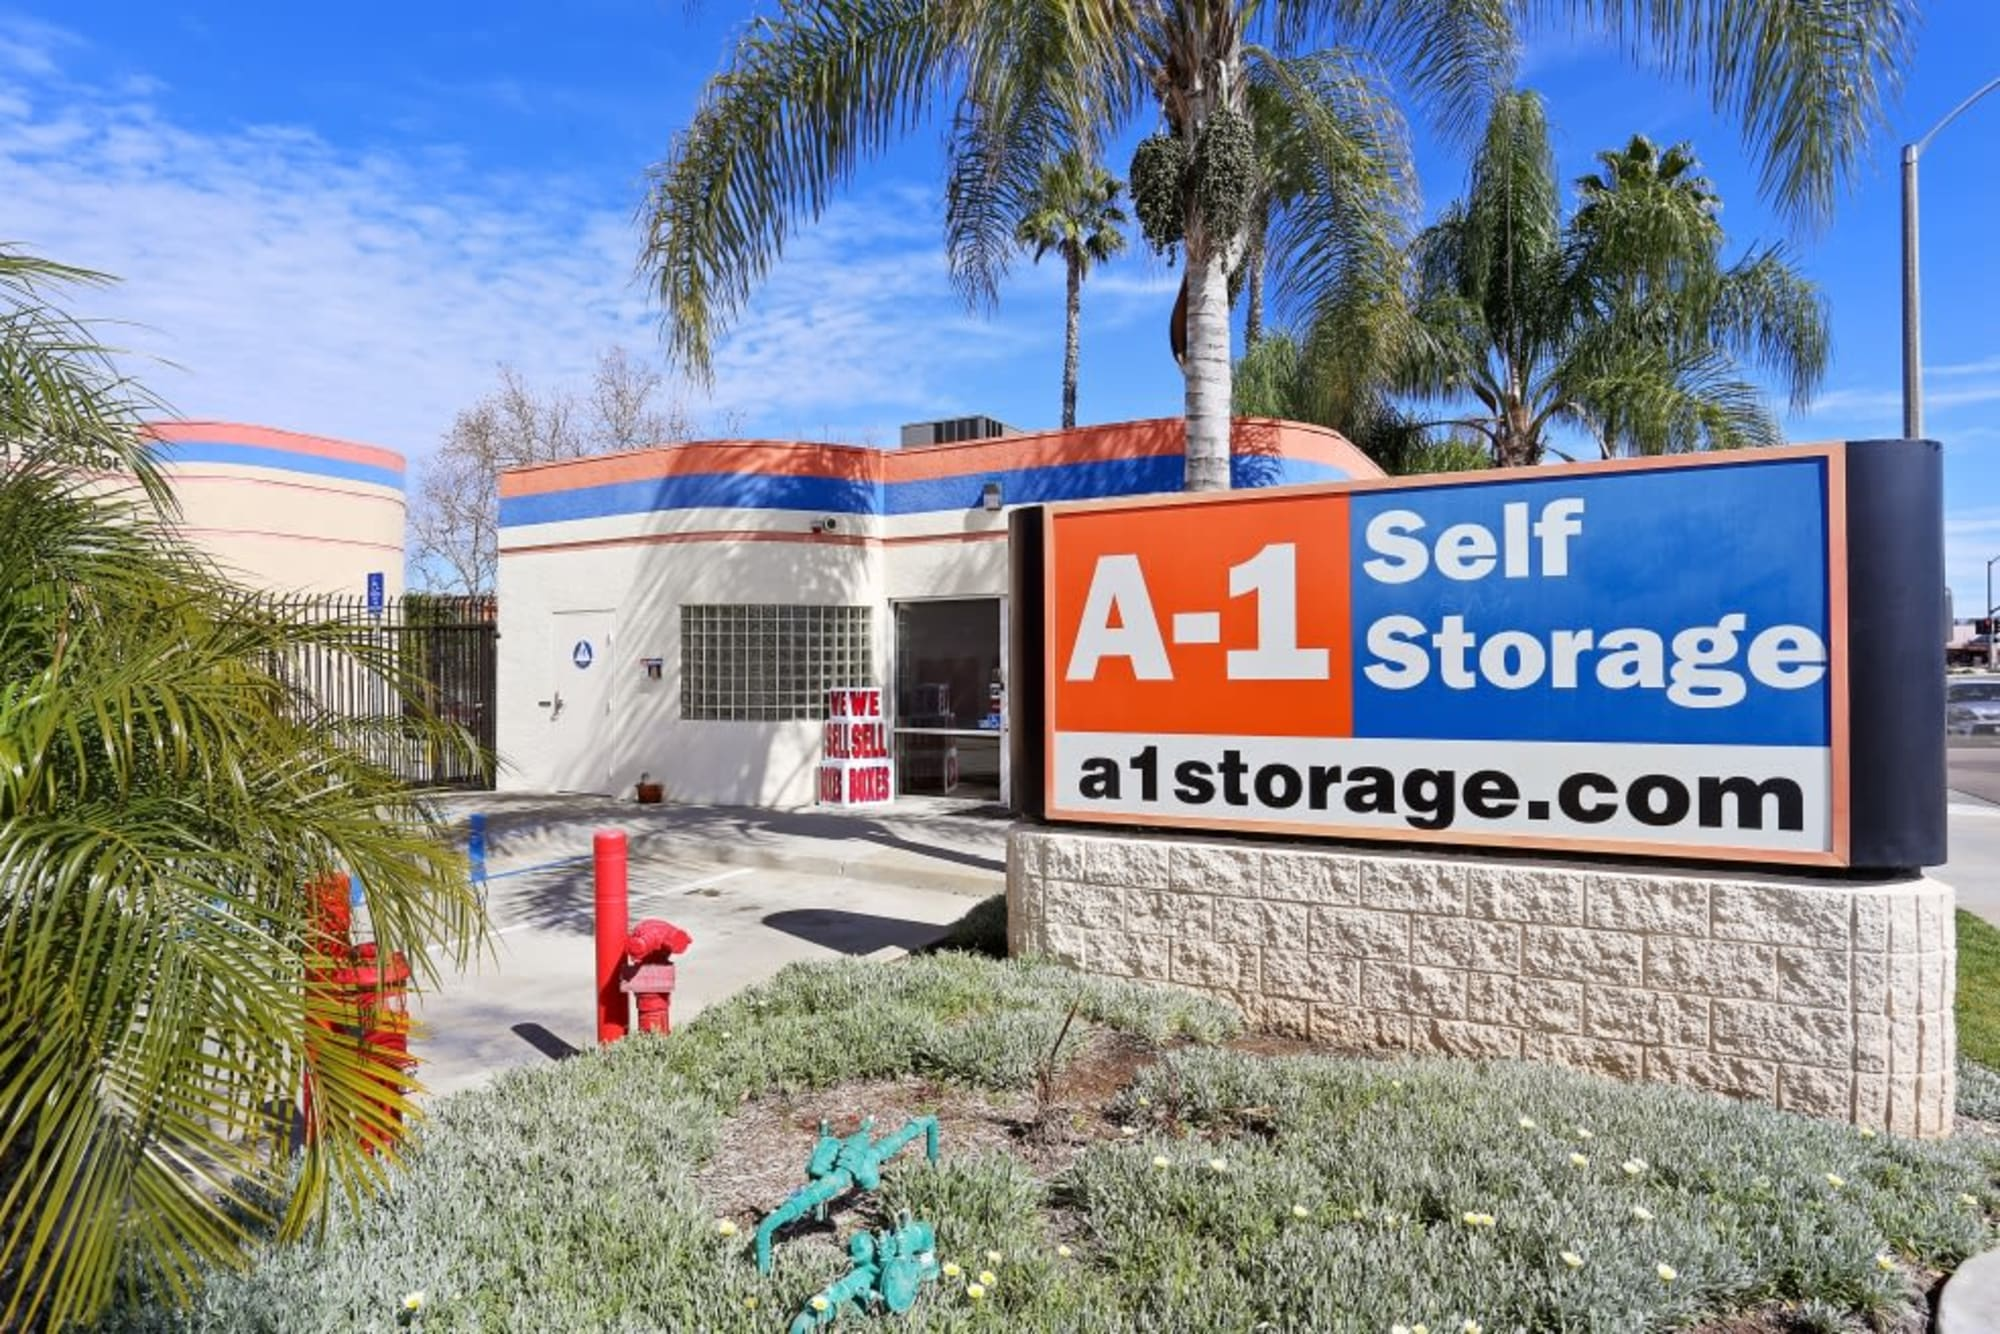 The sign and front entrance to A-1 Self Storage in El Cajon, California